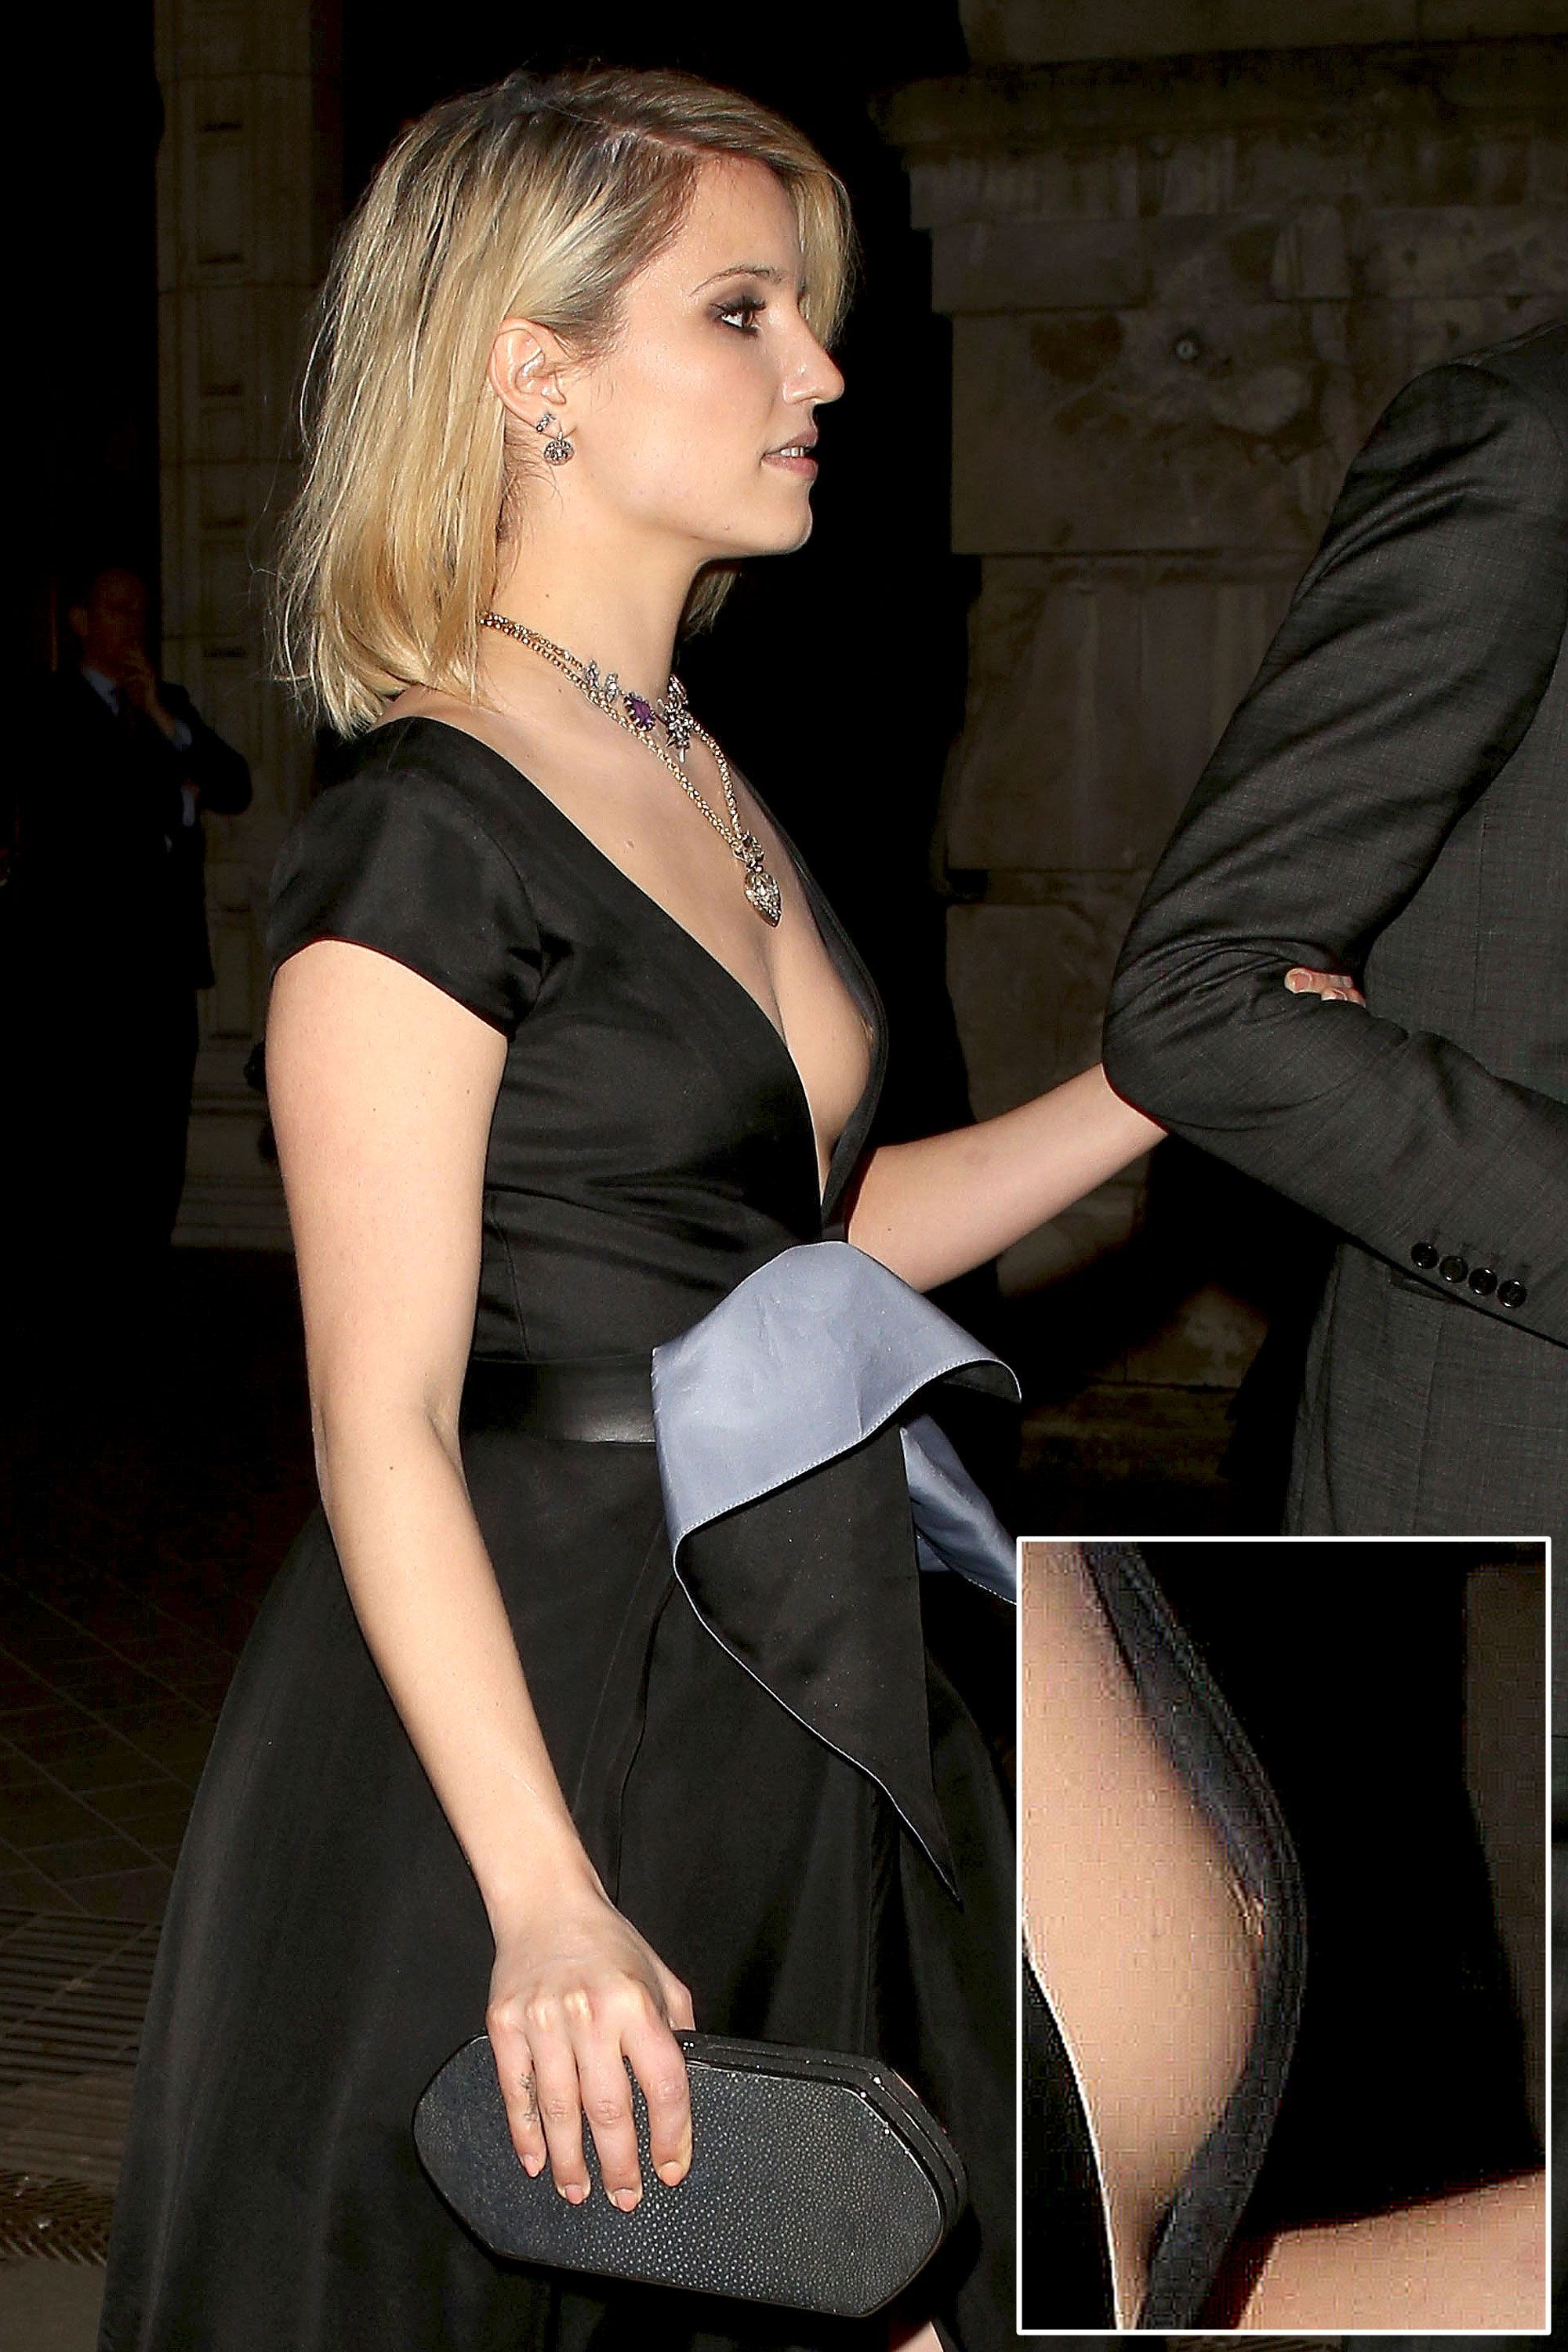 34 Uncensored Celebrity Nip Slips Alexander Mcqueen